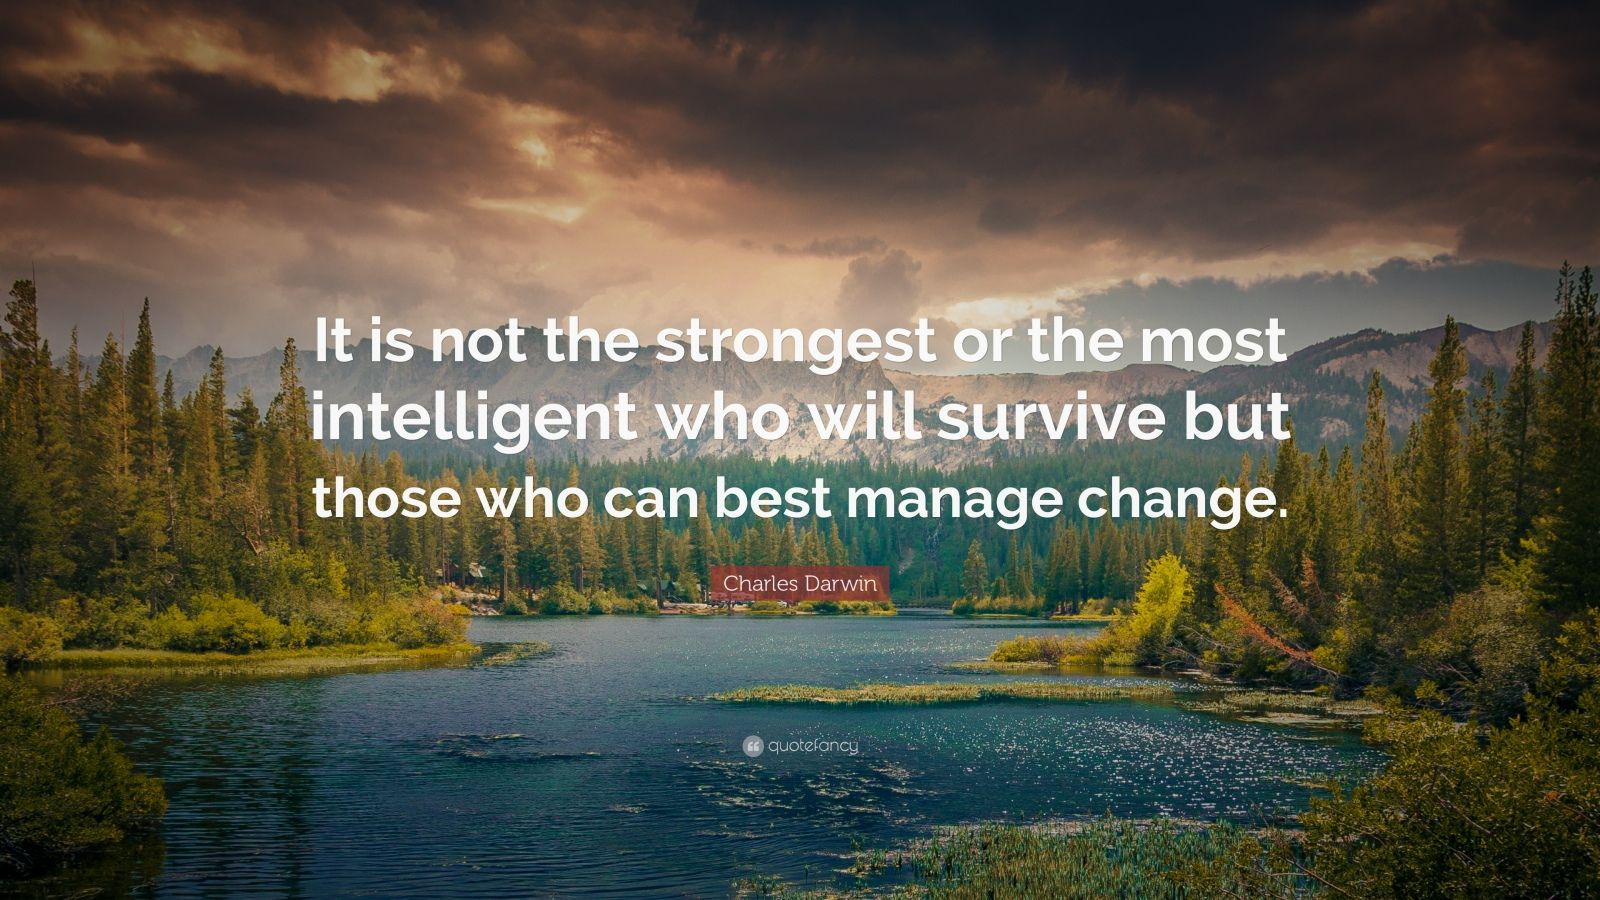 Best Motivational Quotes Wallpaper Charles Darwin Quote It Is Not The Strongest Or The Most